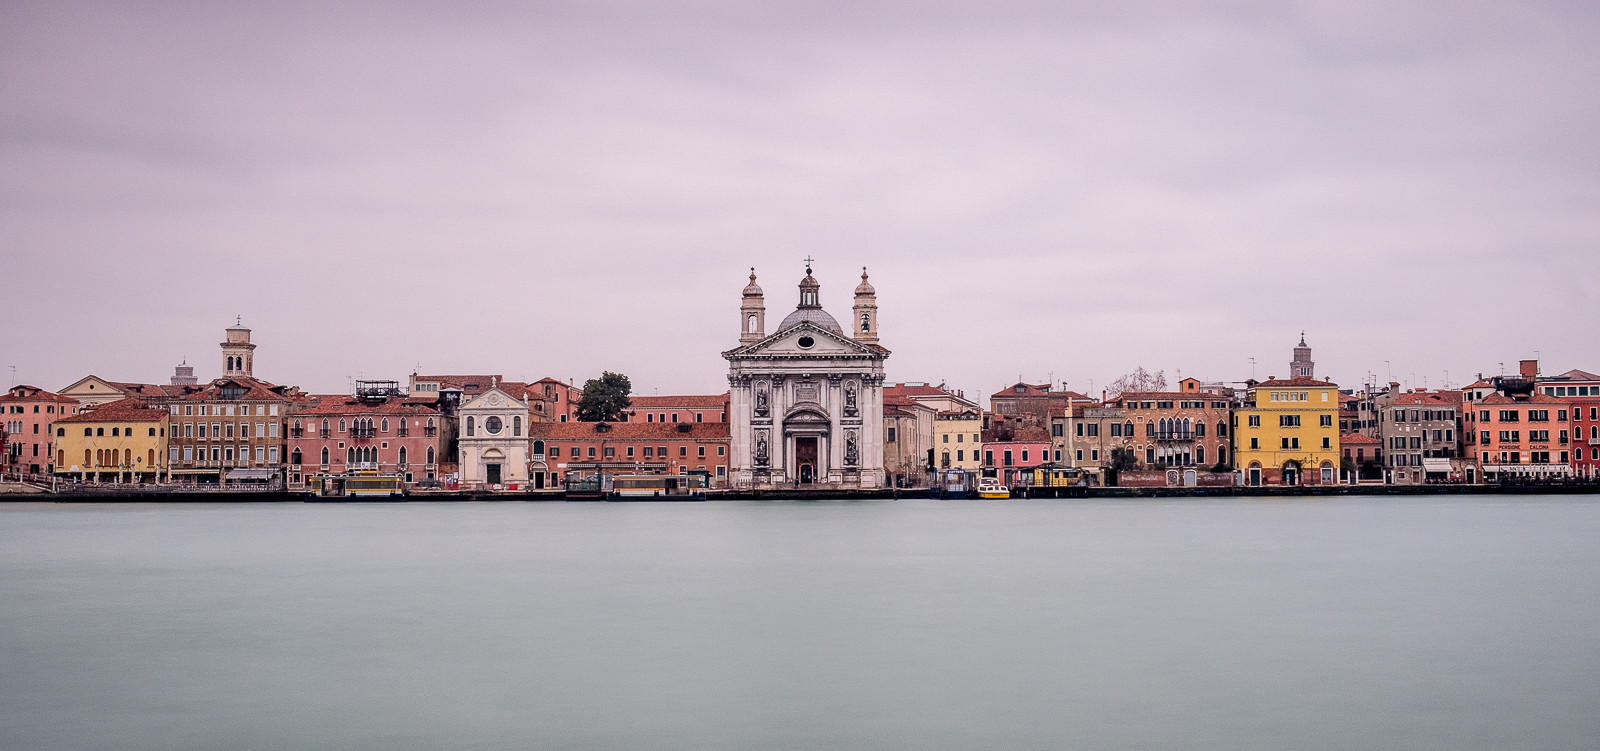 COLOUR - Venice Views by Kate Thompson (10.5 marks)